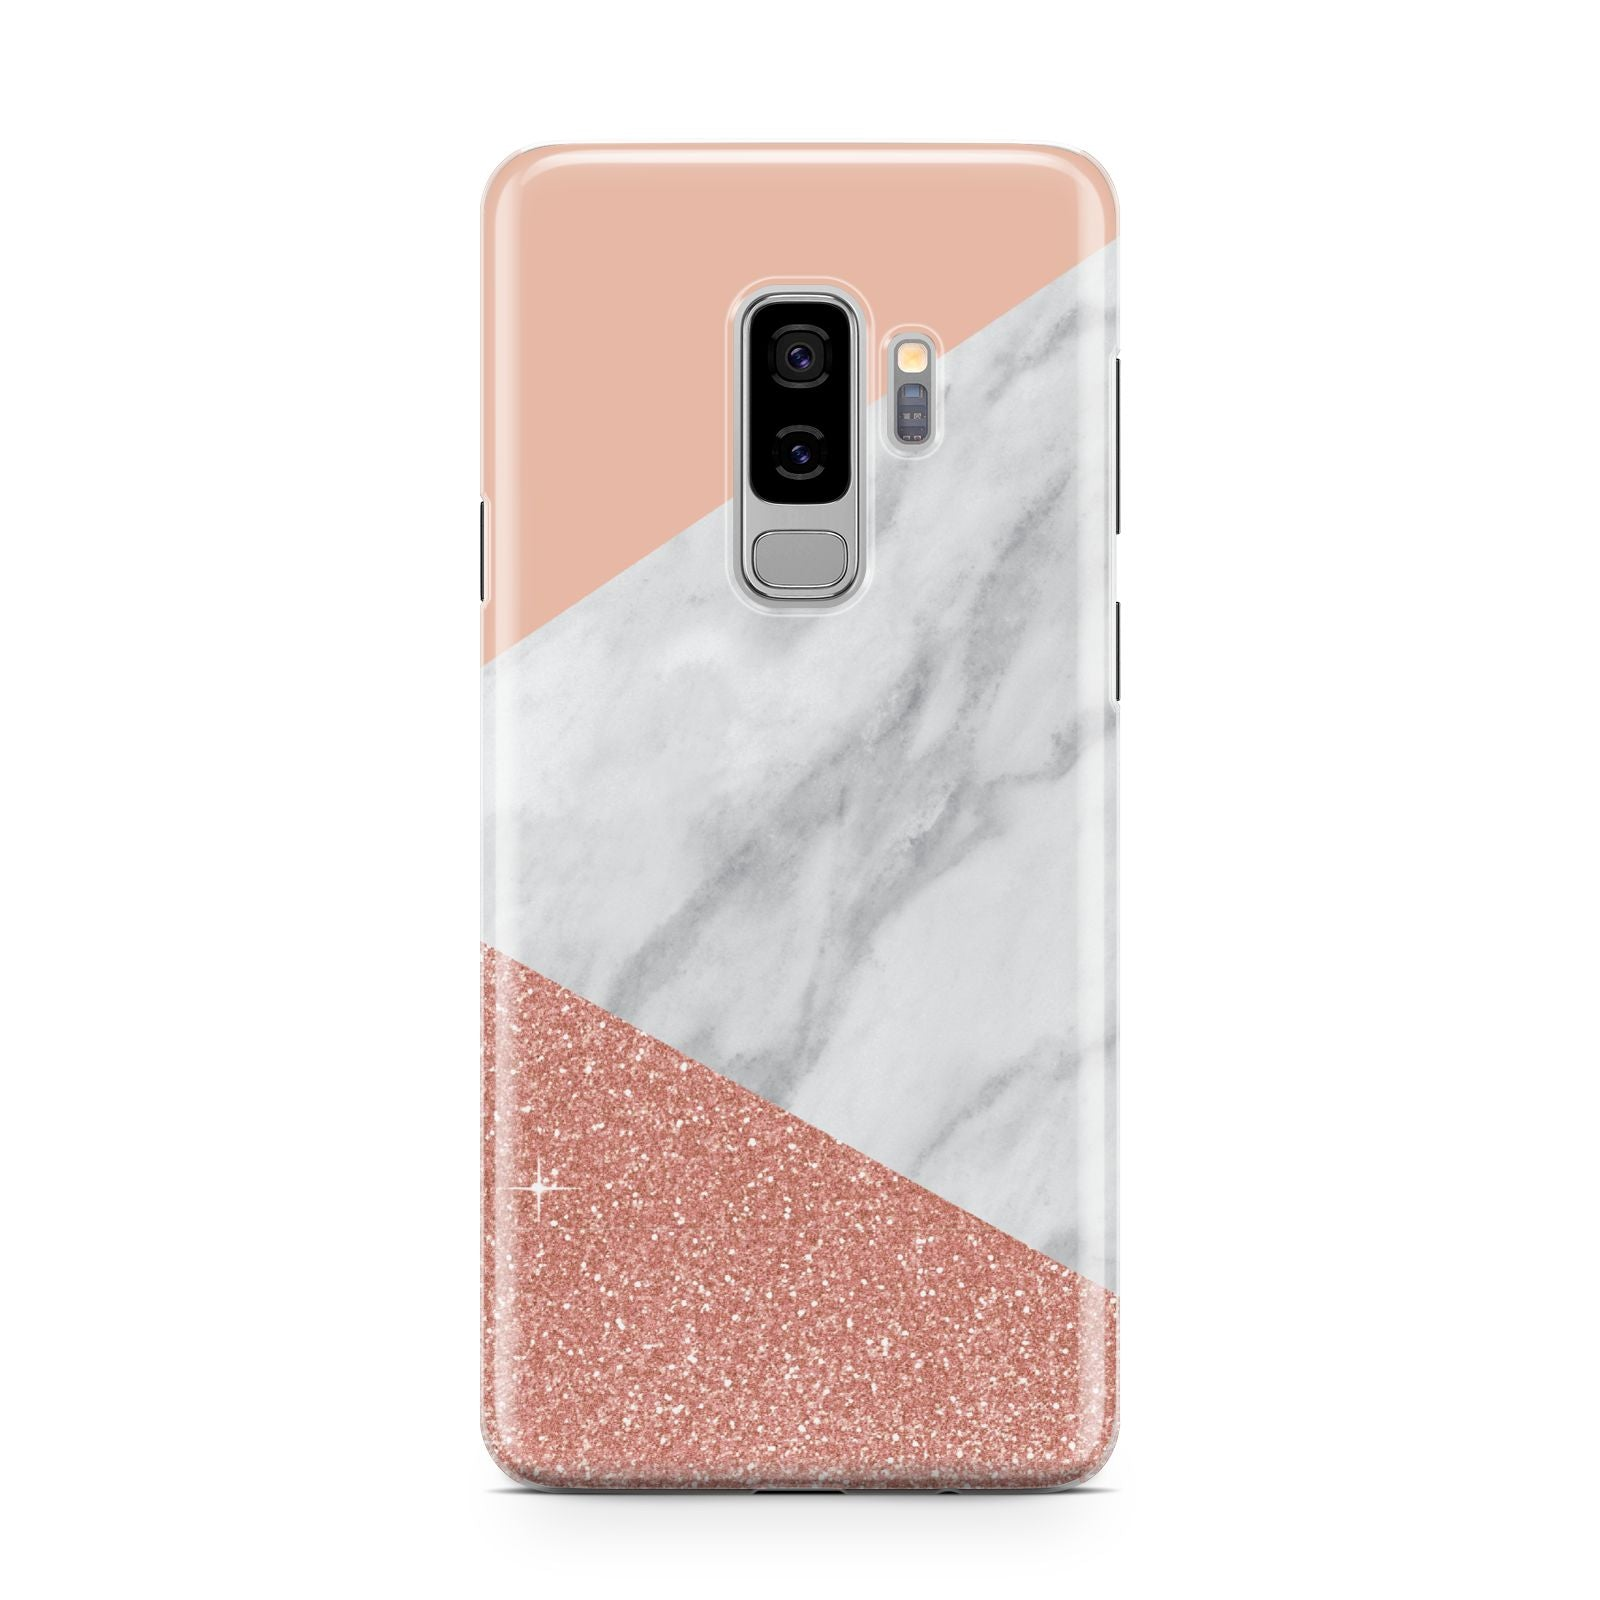 Marble White Rose Gold Samsung Galaxy S9 Plus Case on Silver phone